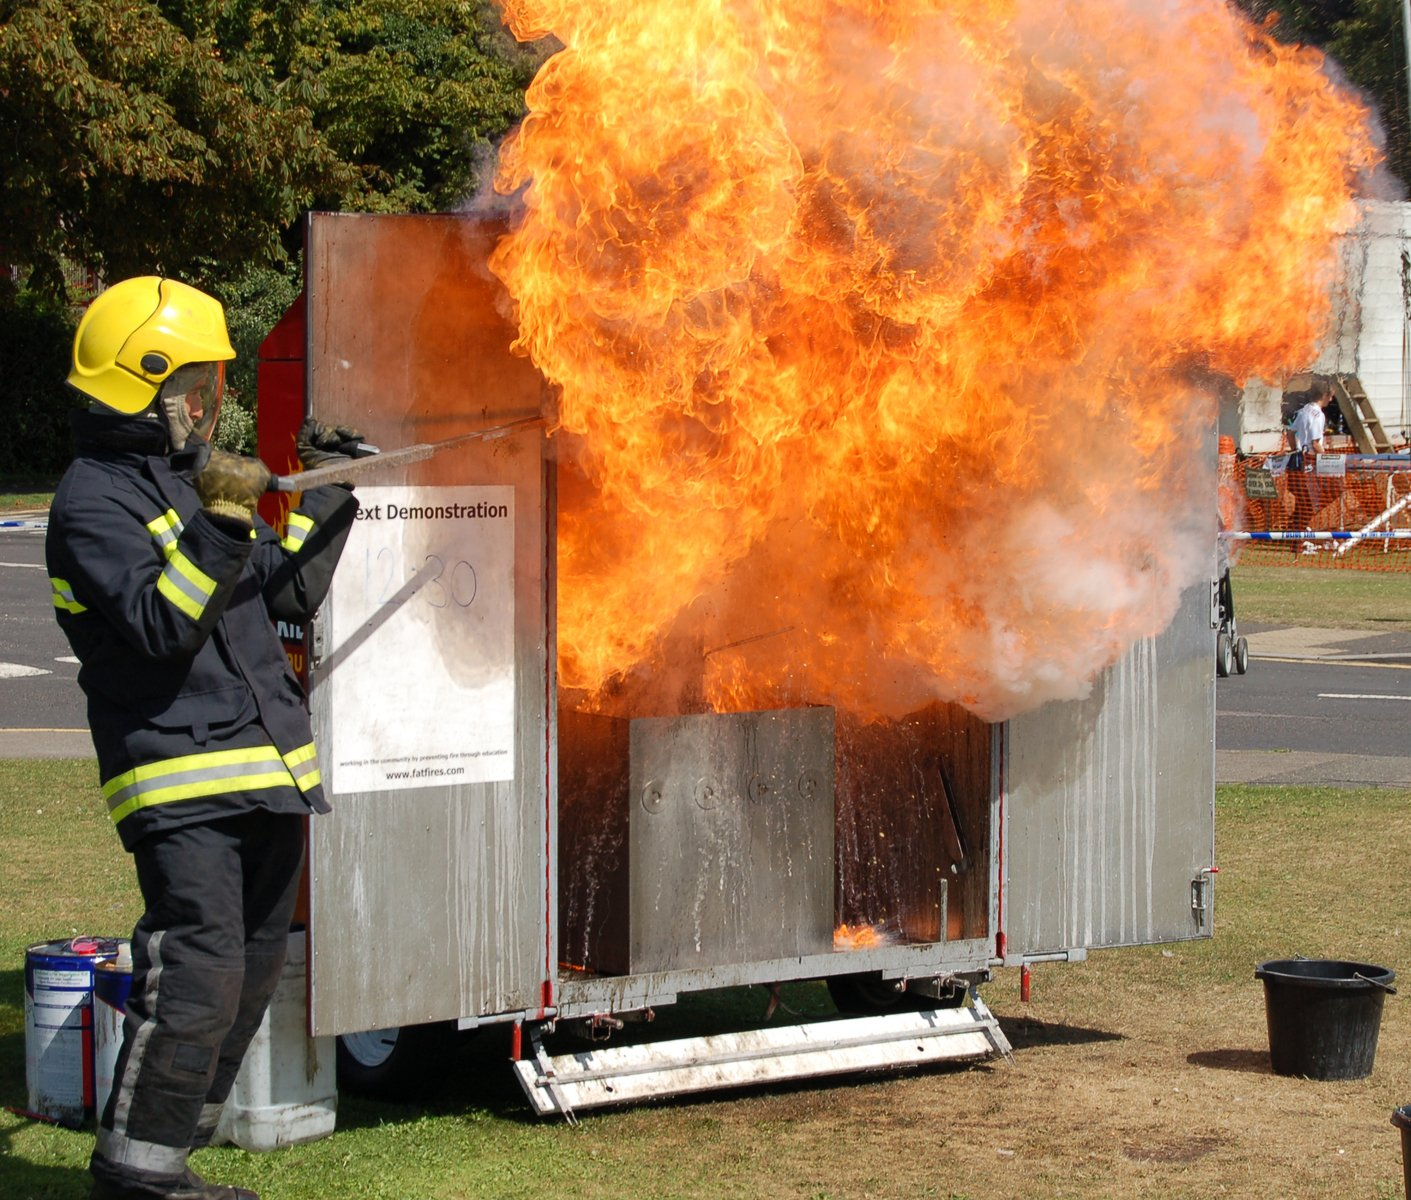 Firefighter Propane Safety Training and Demonstration ...  |Fire Figher Demonstration